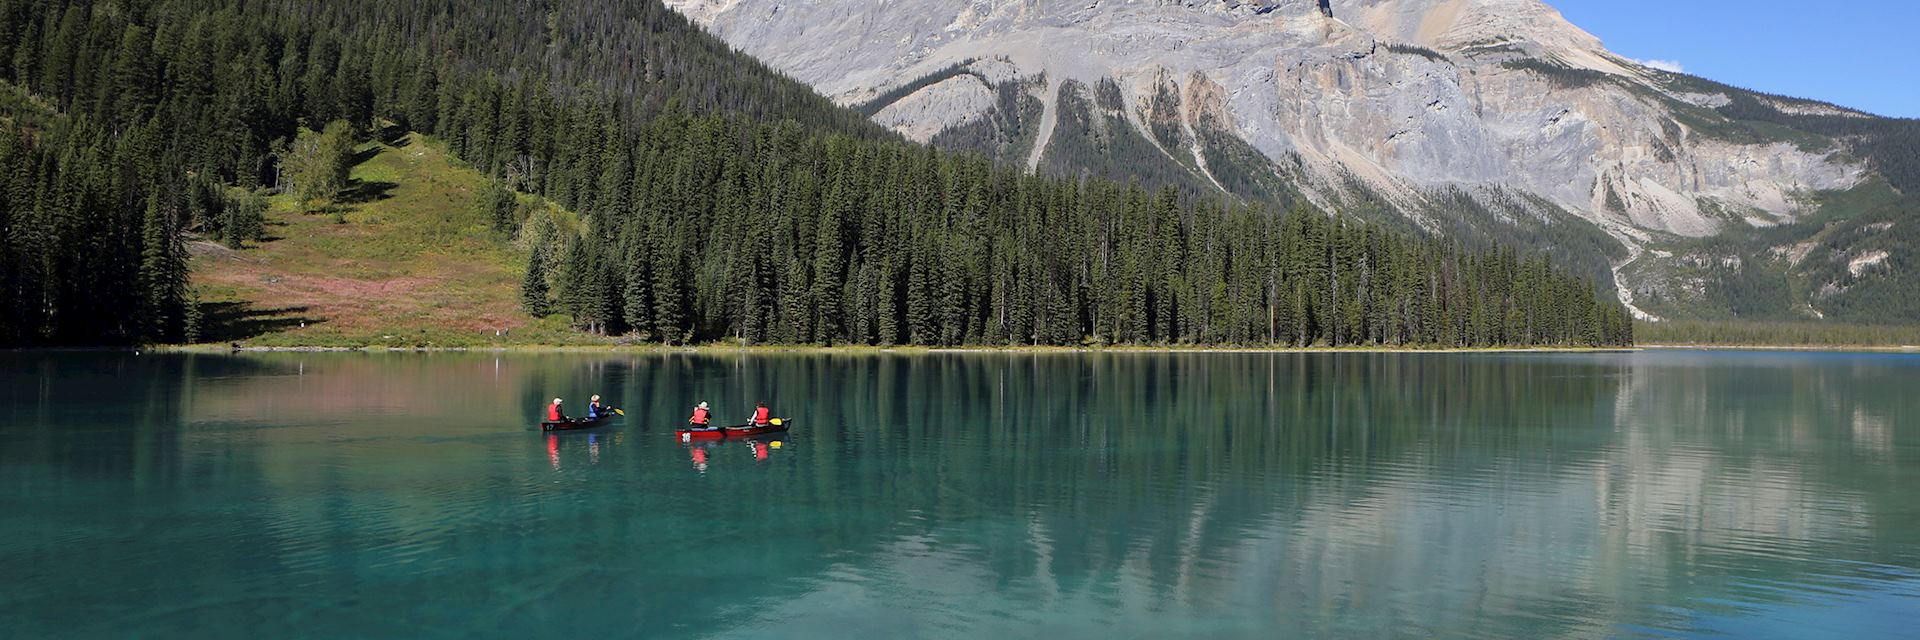 Canoeing on the Emerald Lake, Canada